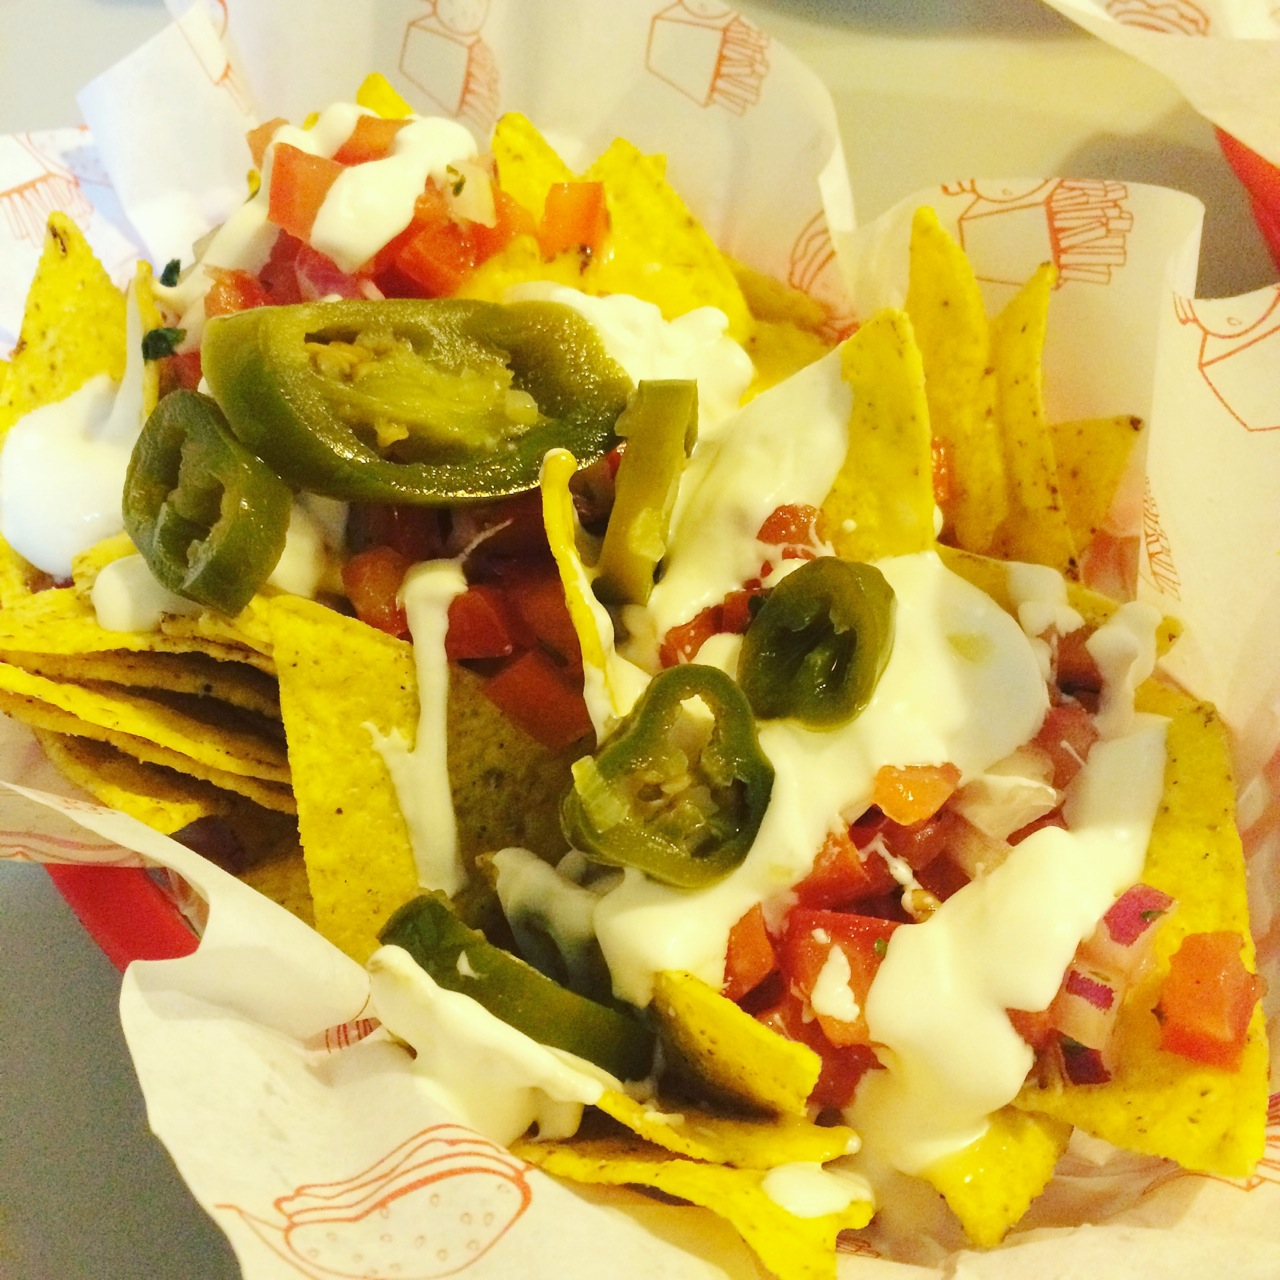 https://i2.wp.com/fatgayvegan.com/wp-content/uploads/2016/01/v-rev-nachos.jpg